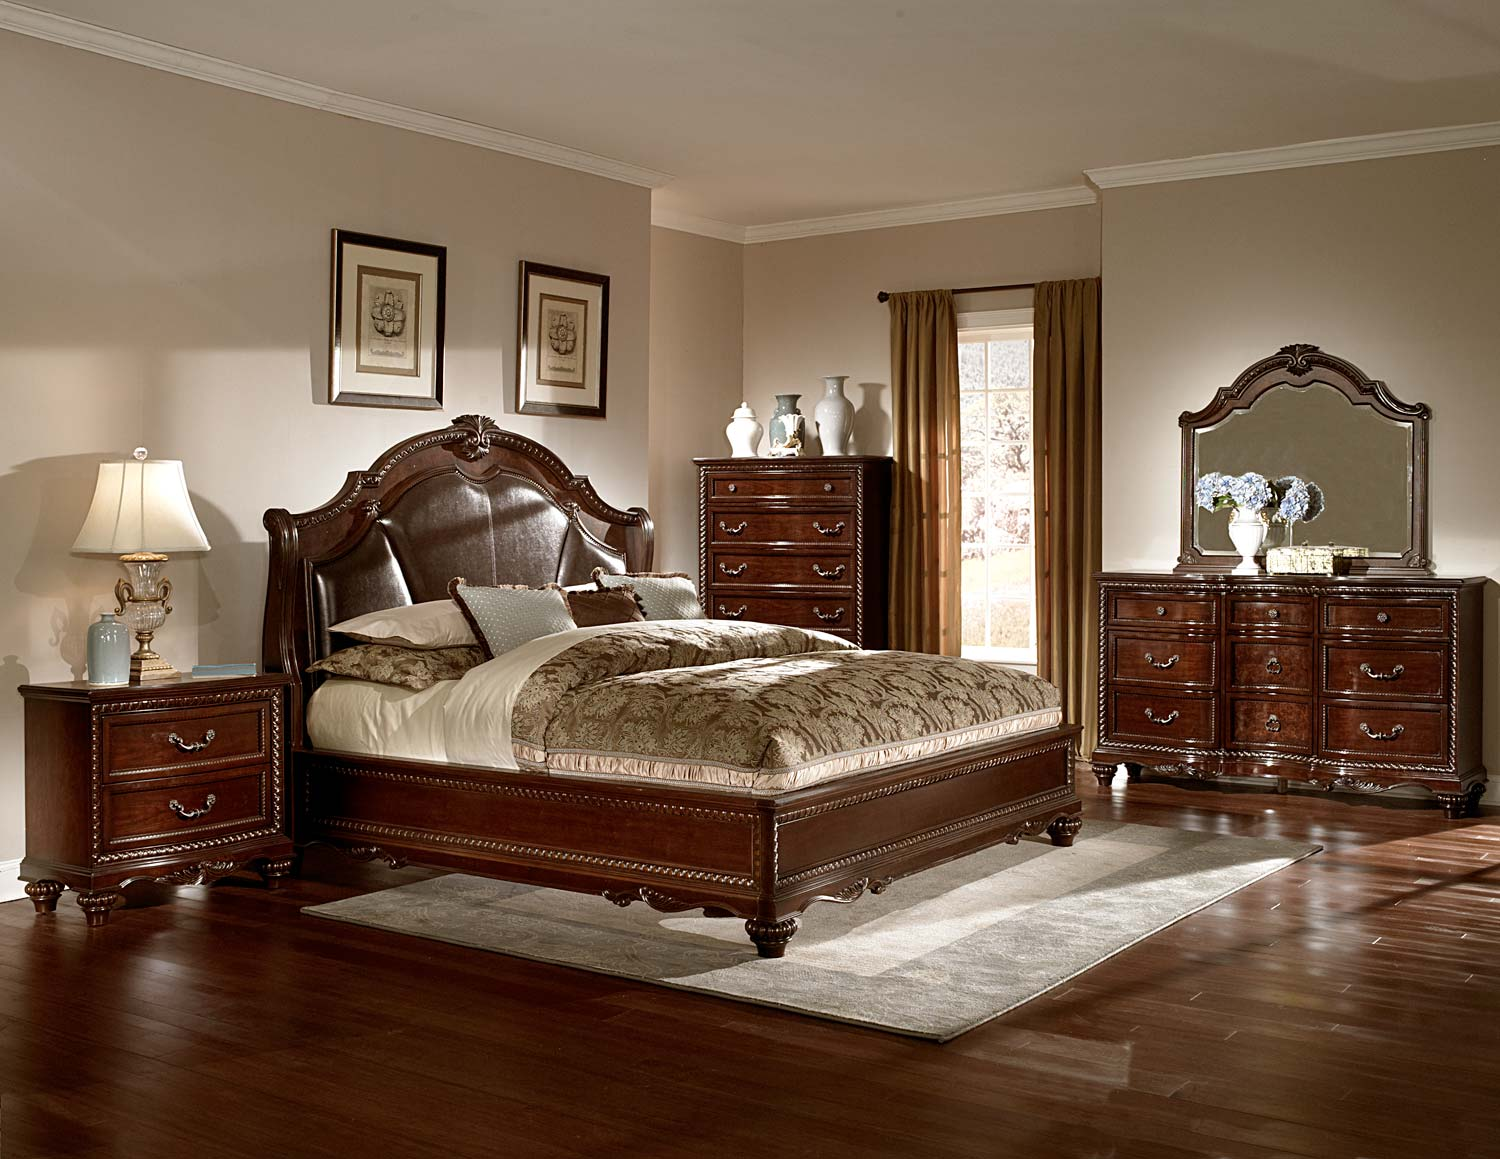 Homelegance Hampstead Court Bedroom Set Cherry B2214 Bed